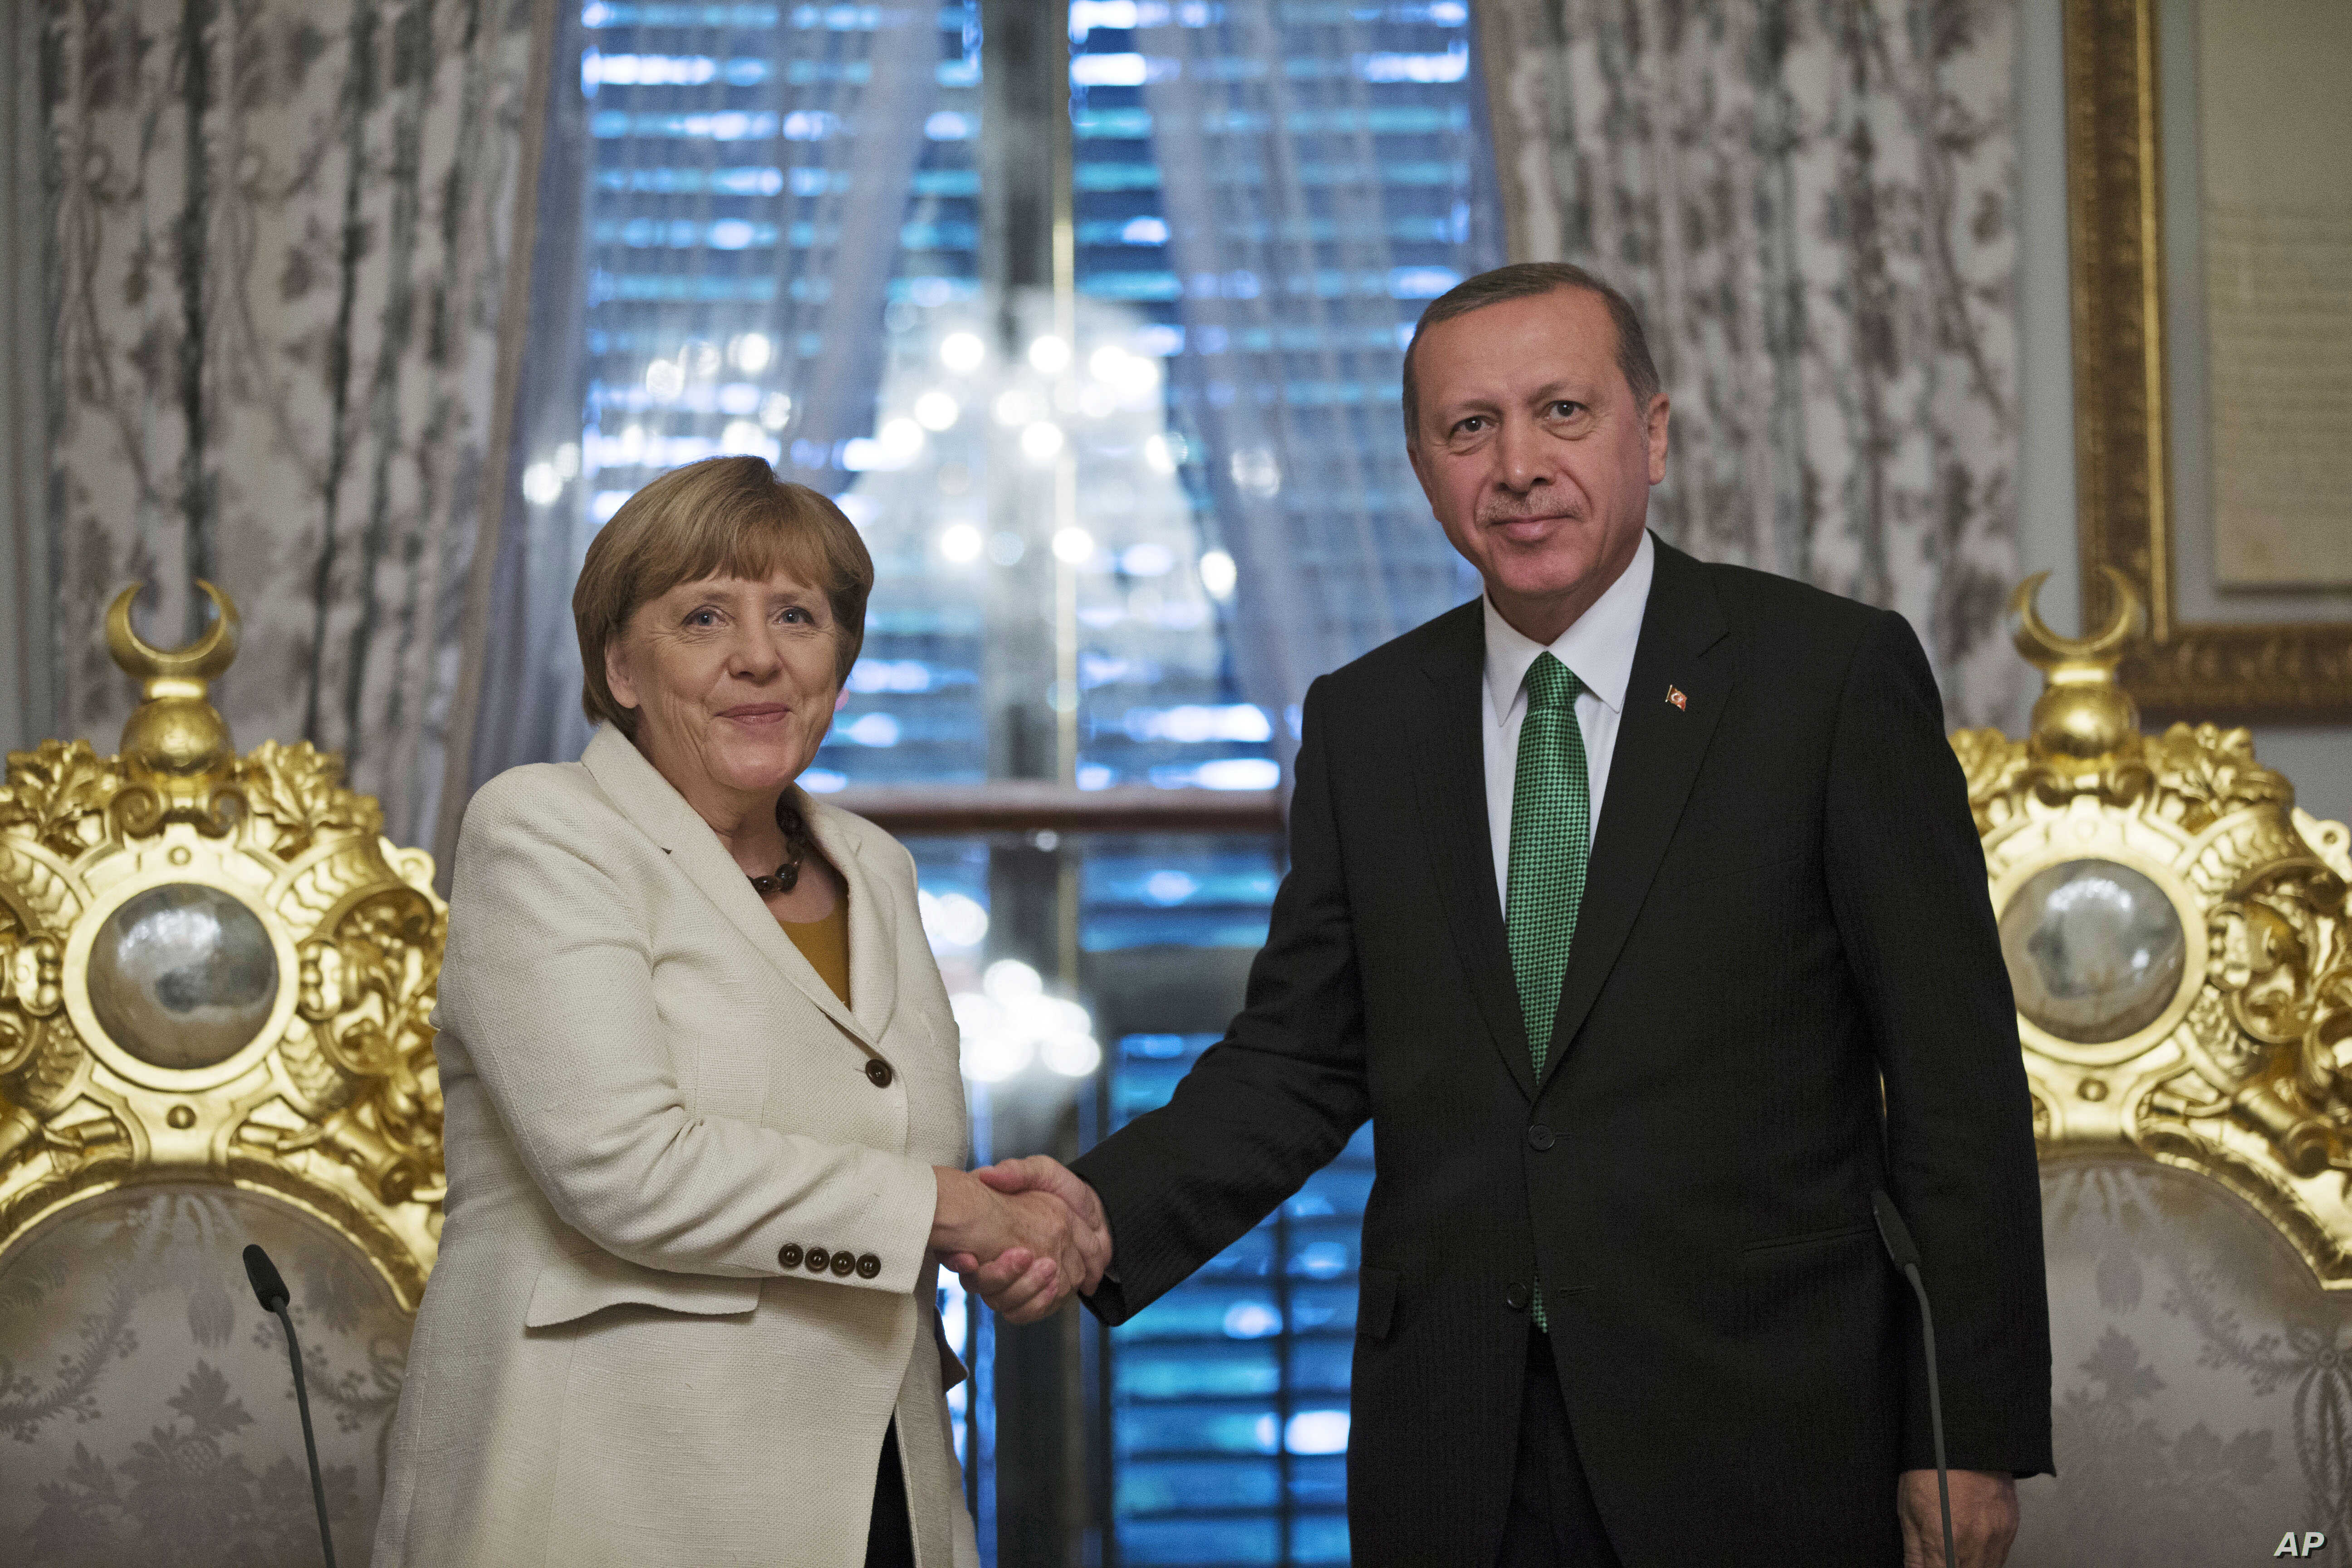 Turkish President Recep Tayyip Erdogan, right, shakes hands Germany's Chancellor Angela Merkel, left, following a joint statement after their meeting in Istanbul, Oct. 18, 2015.